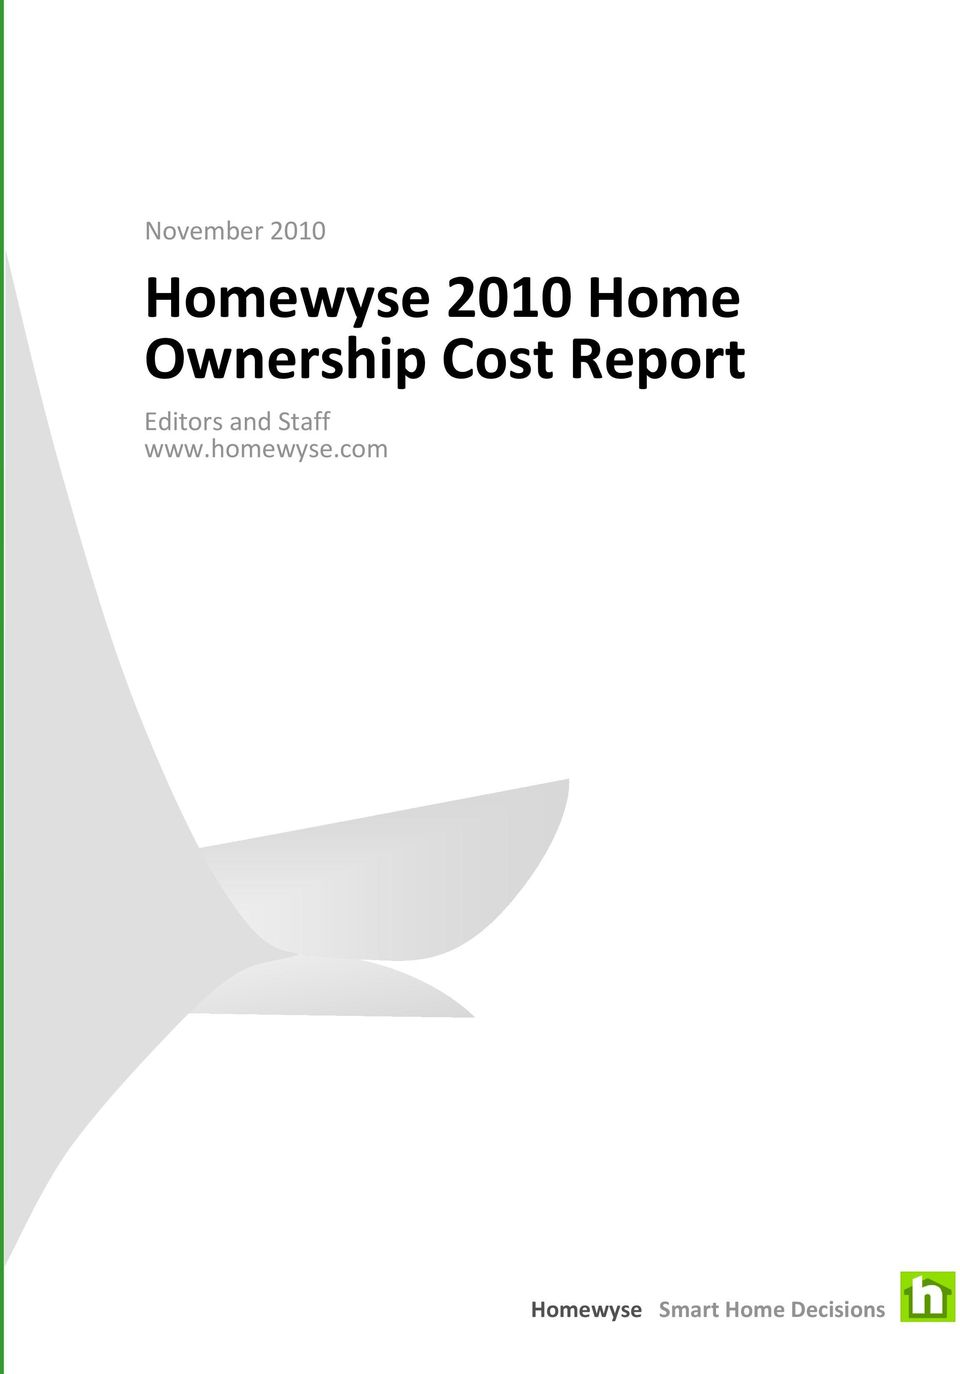 Homewyse 2010 Home Ownership Cost Report - PDF